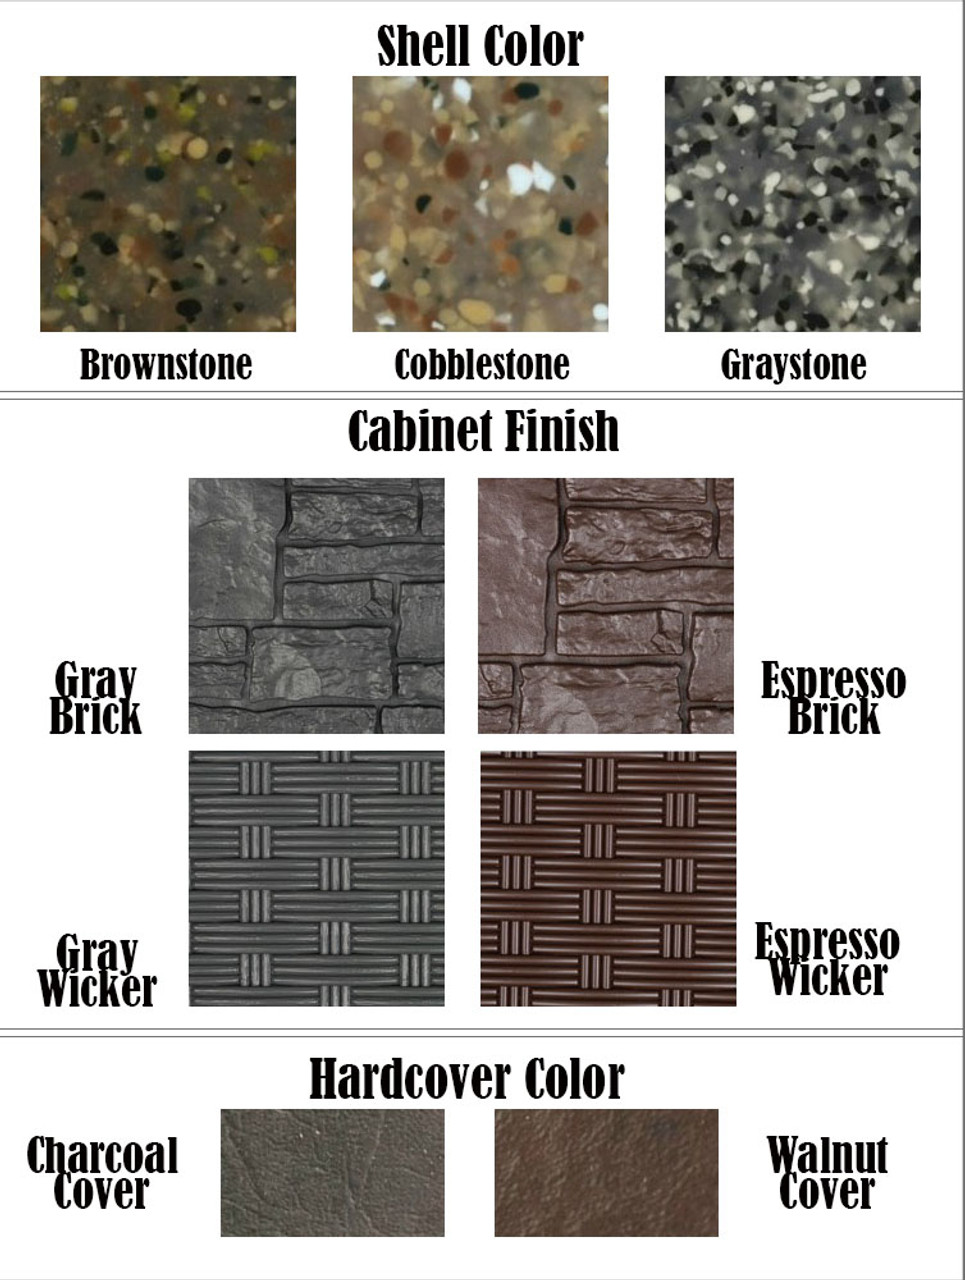 Fantasy Spa Cabinet Finishes & Shell Color Options